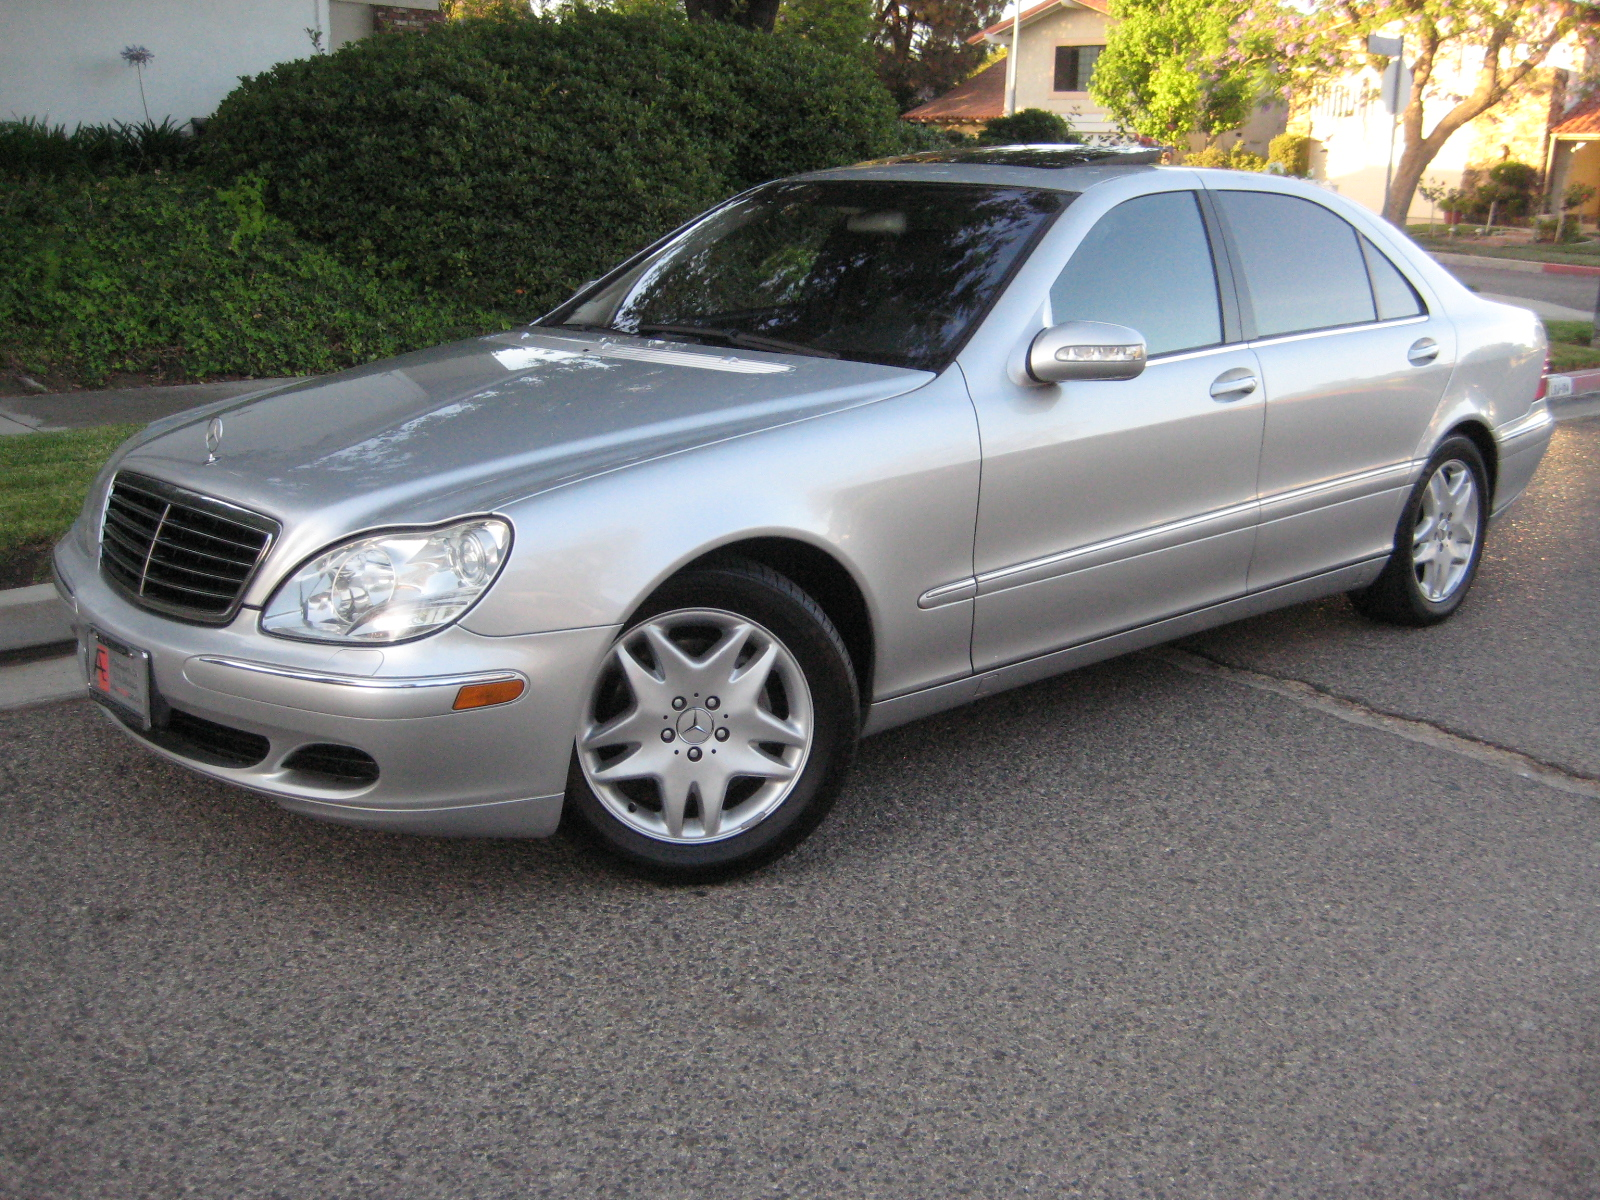 2003 mercedes benz s class pictures cargurus for 2003 s500 mercedes benz